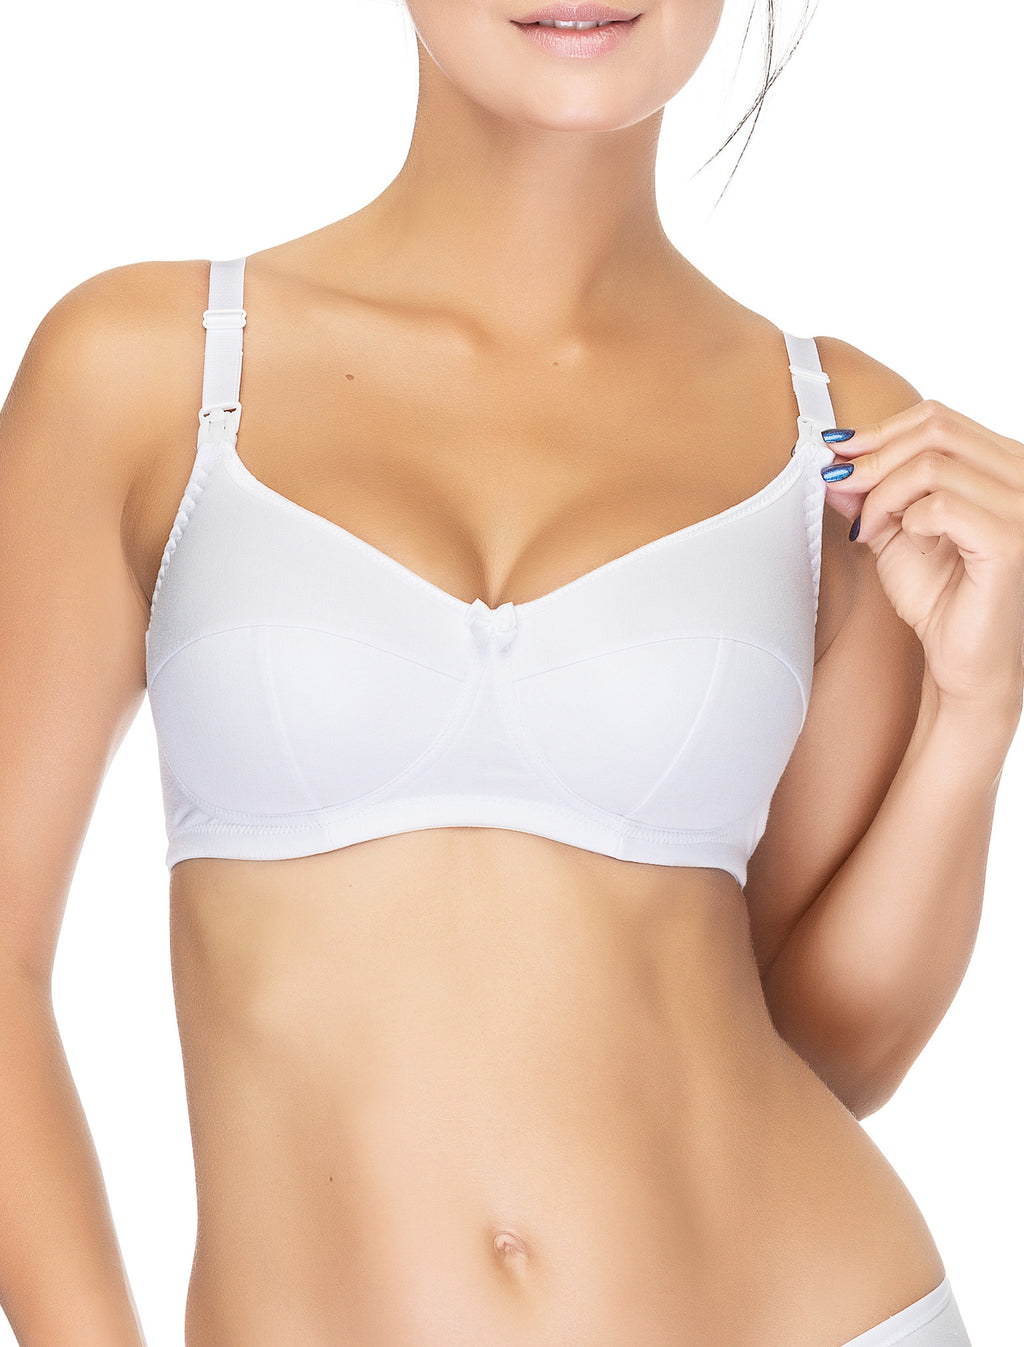 Lauma, White Wireless Padded Cotton Nursing Bra, On Model Front, 75A40